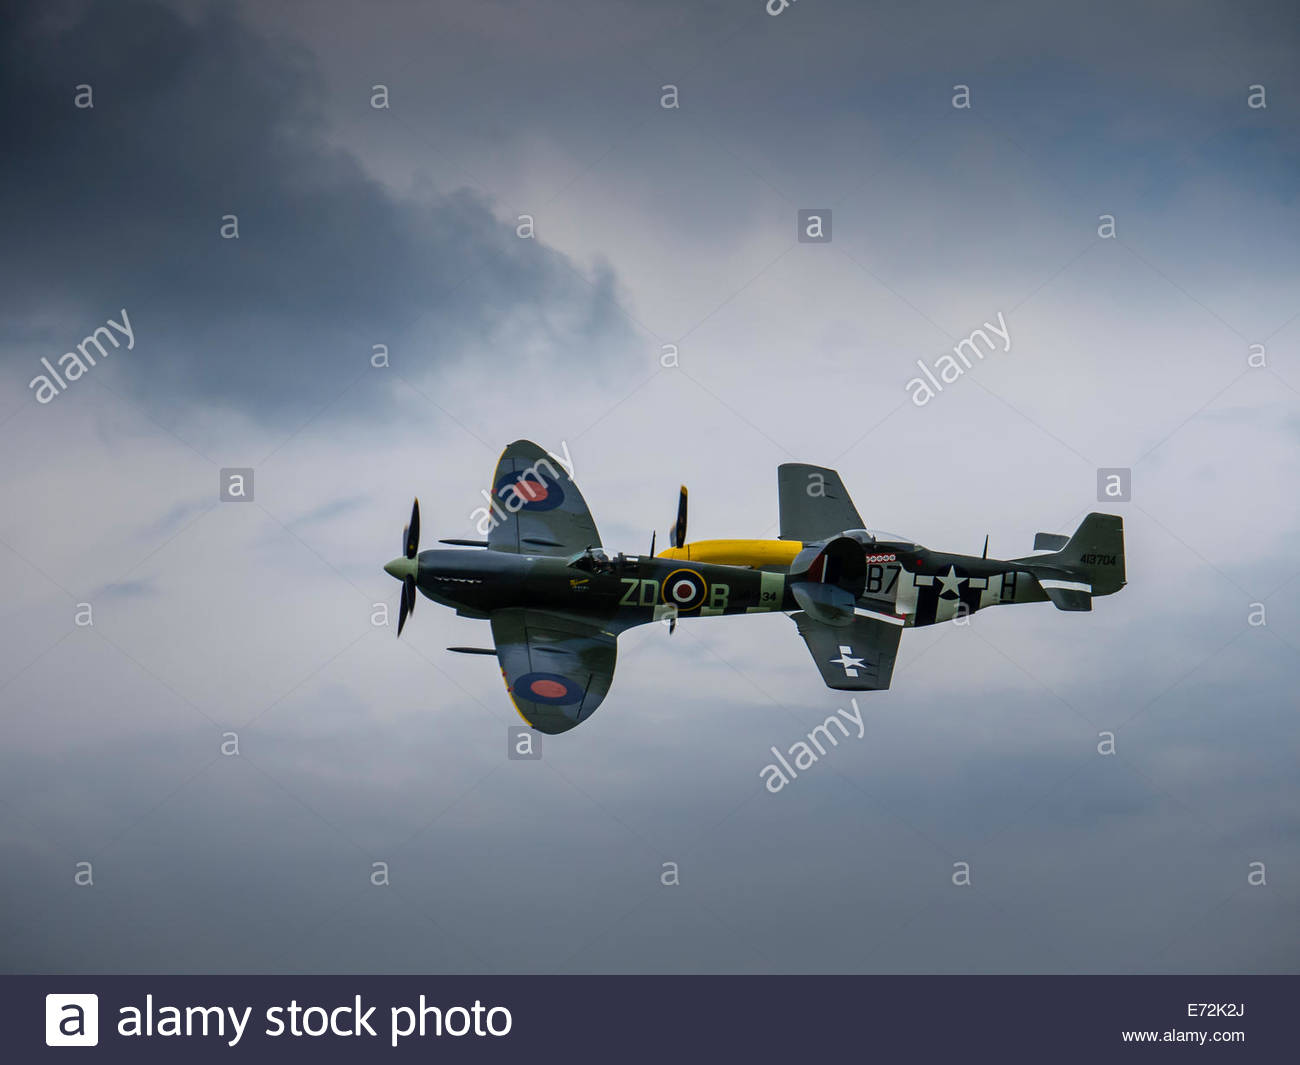 Dunsfold England Spitfire and Mustang in close formation - Stock Image